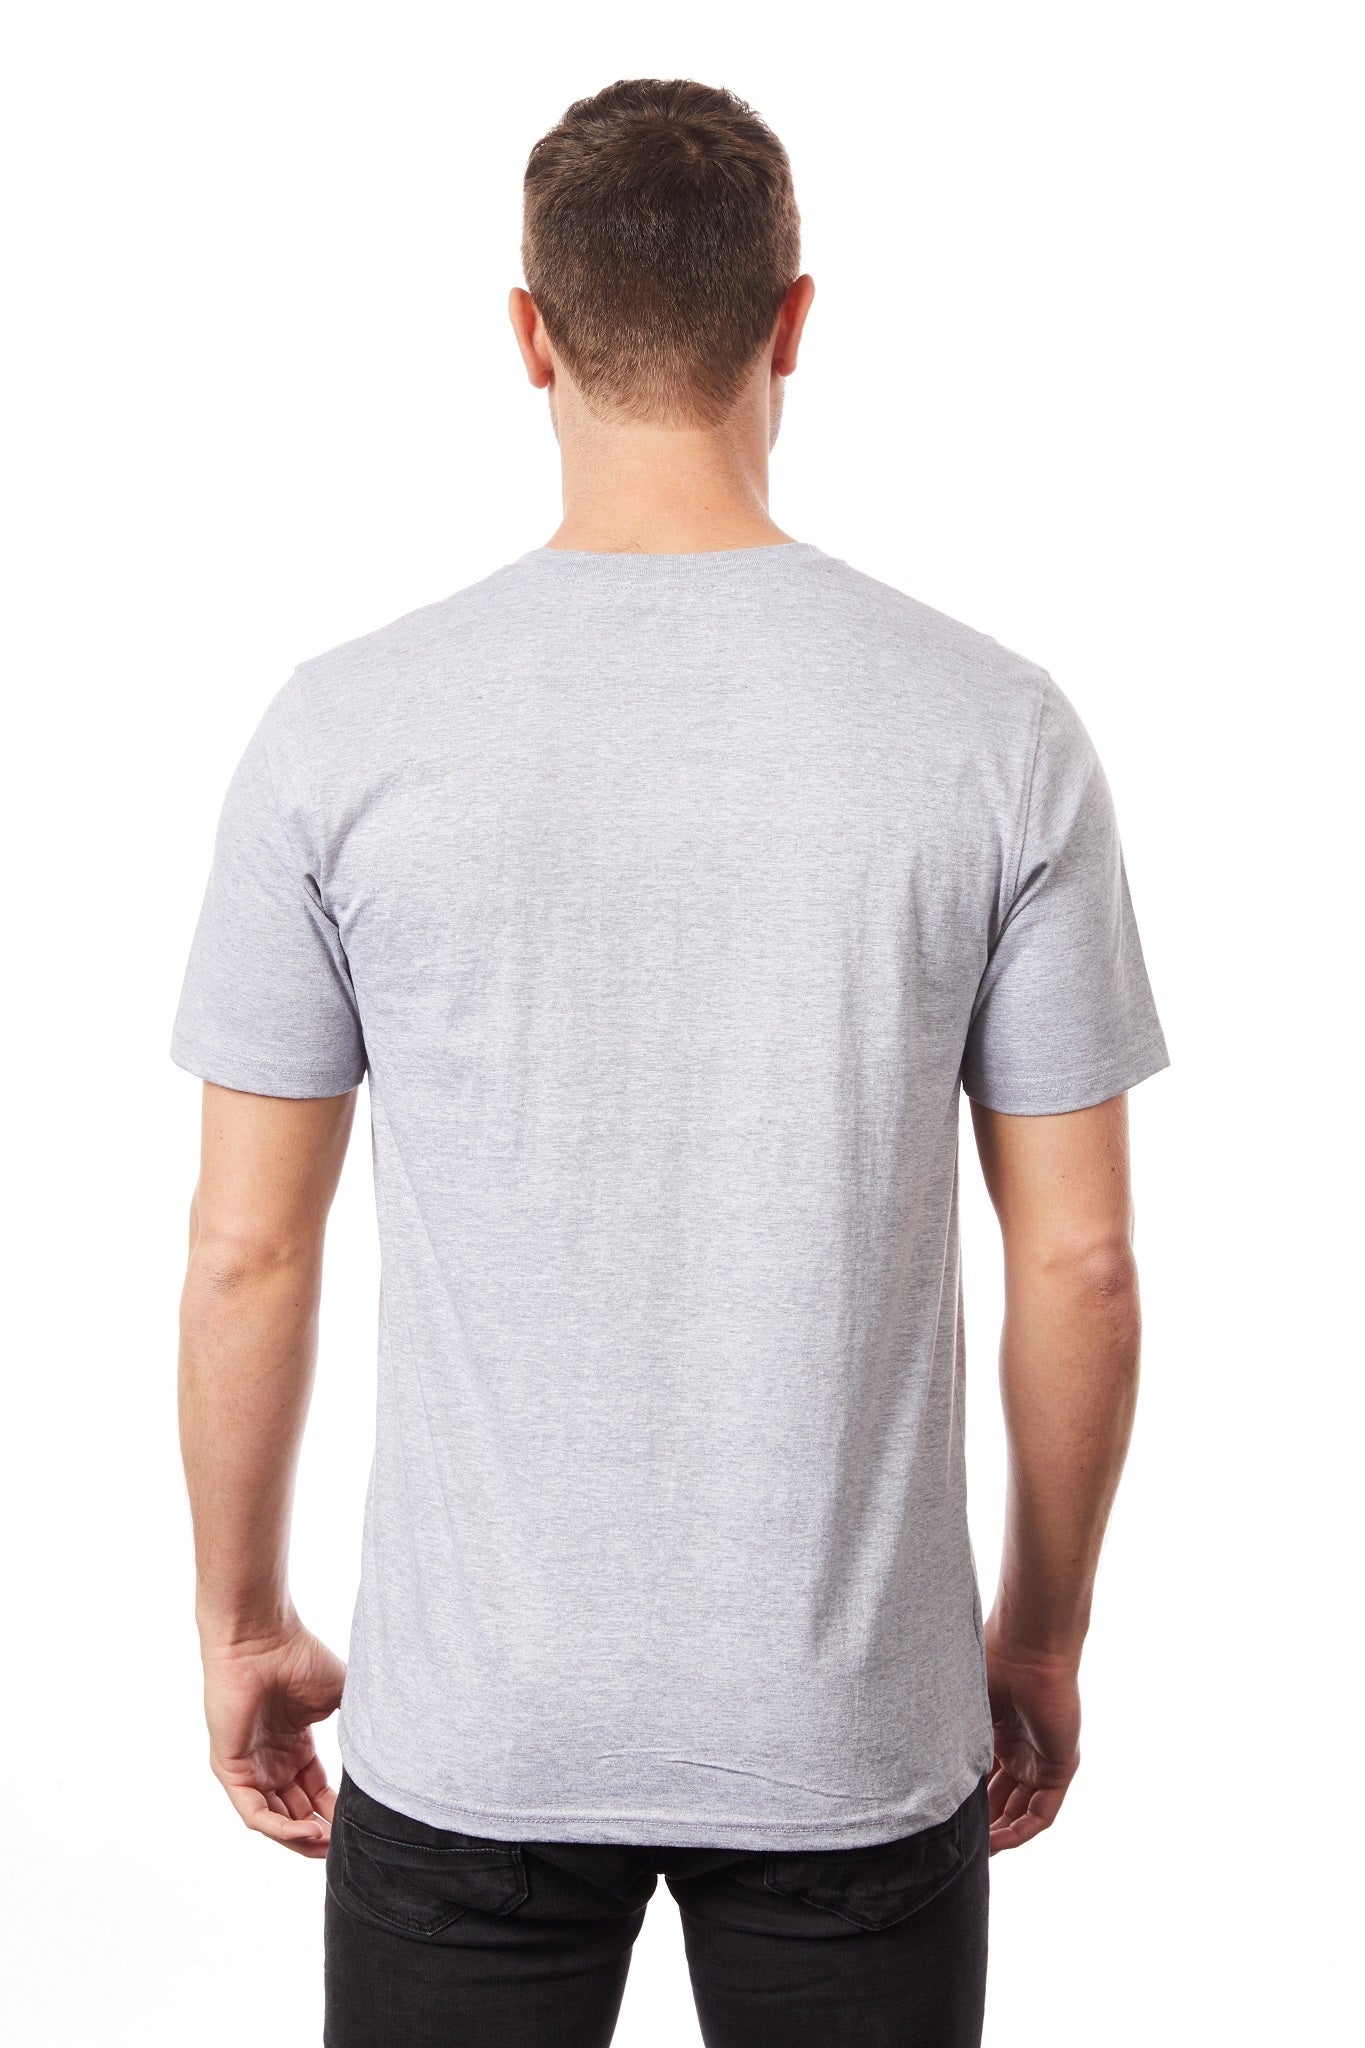 Tipsy Koala Men's Grey Round Neck